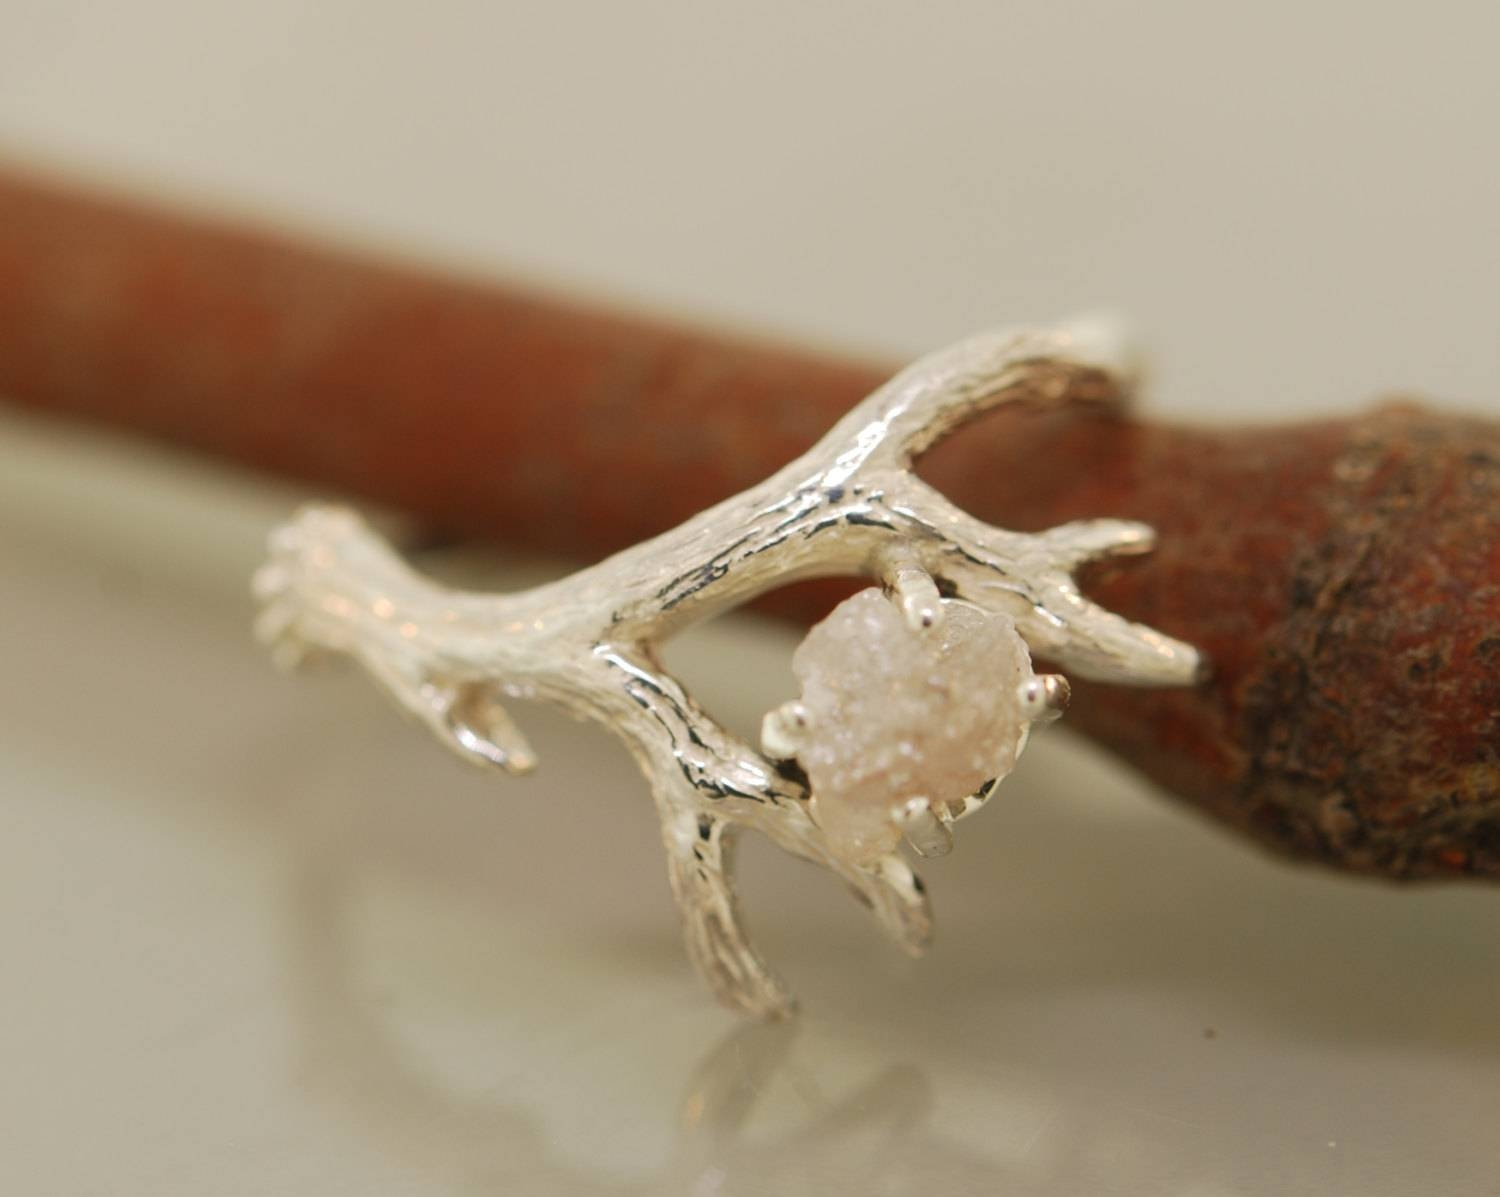 Antler Ring 2 With Rough Diamondrough Diamond With Regard To Antler Engagement Rings (View 2 of 15)